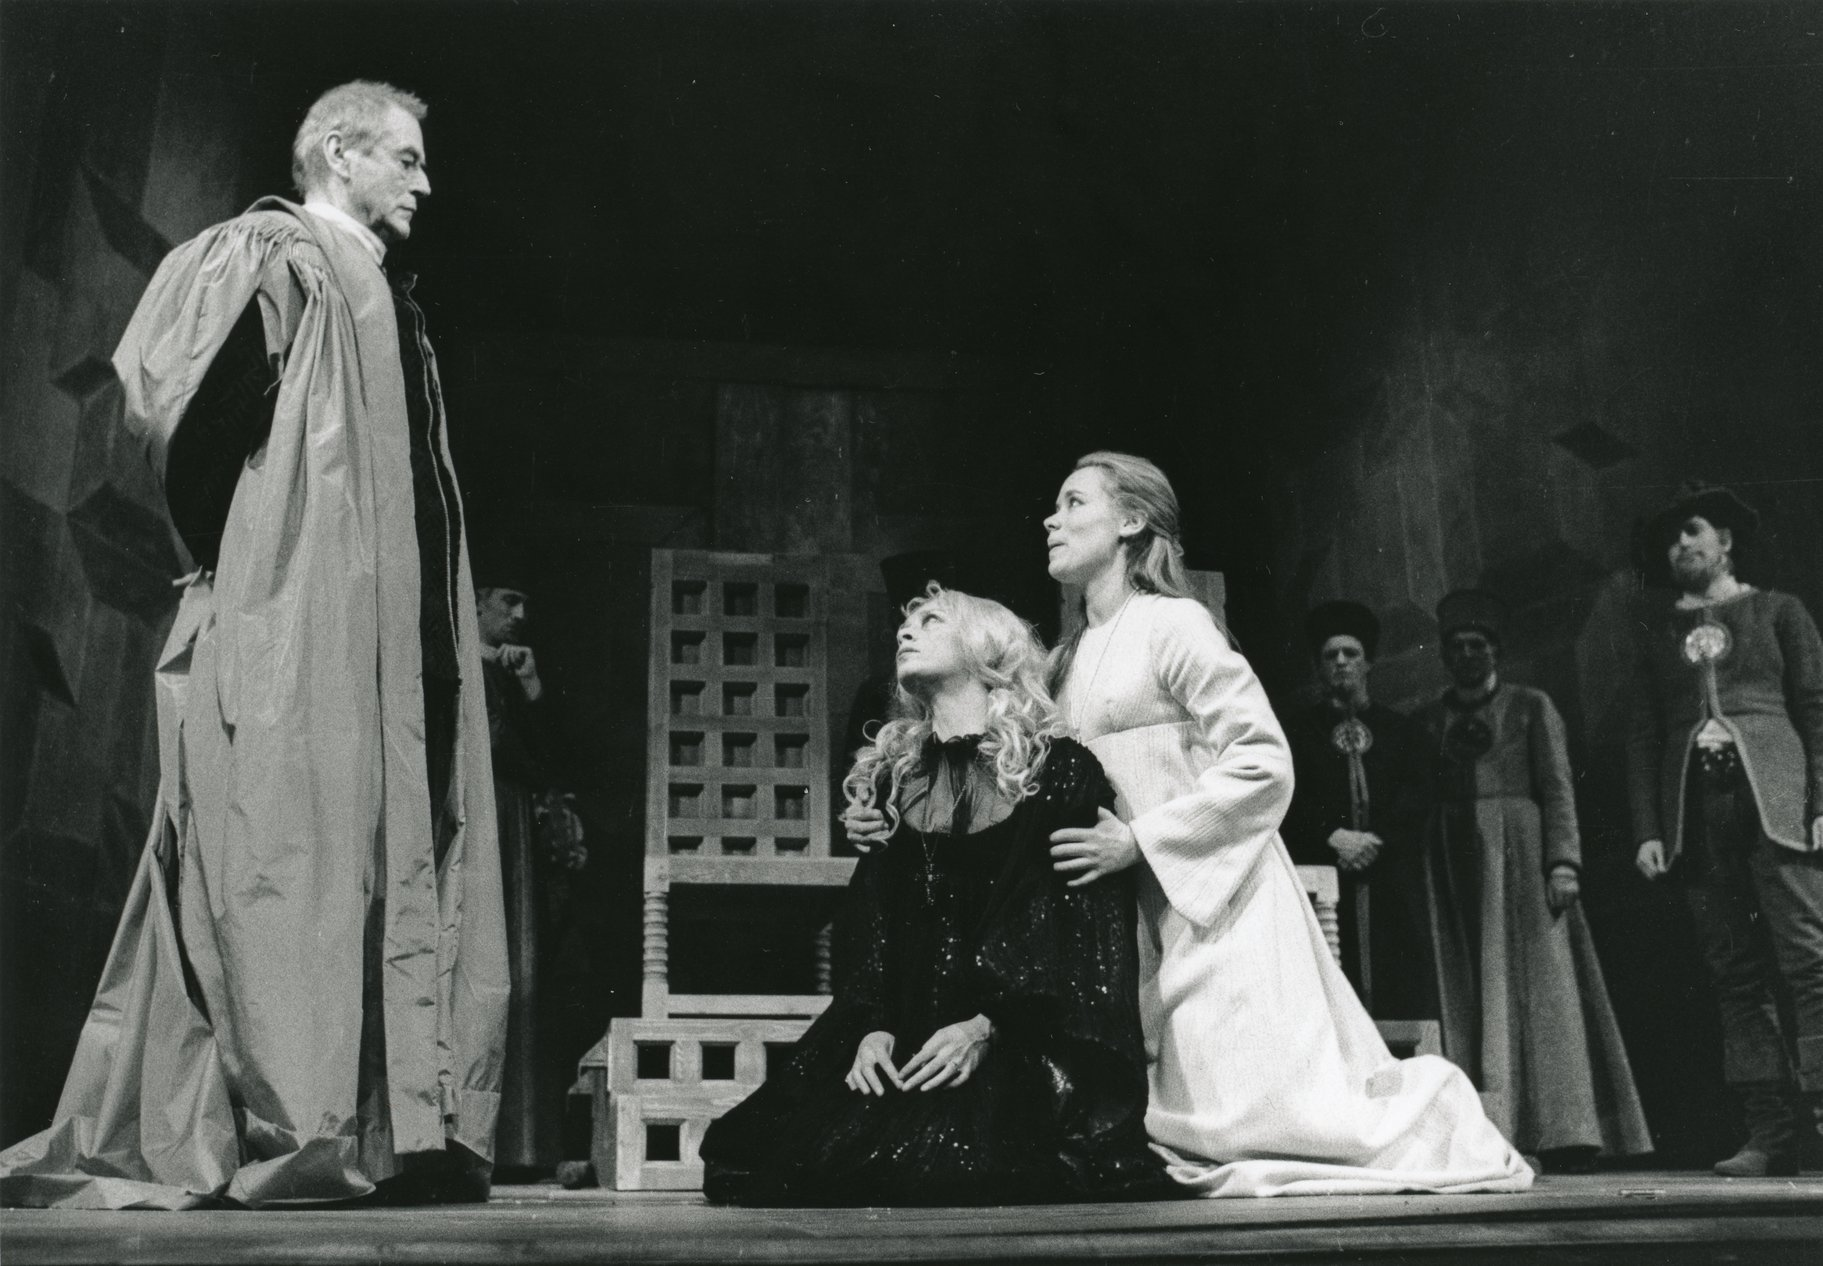 A man in long robes stands over two pleading women.